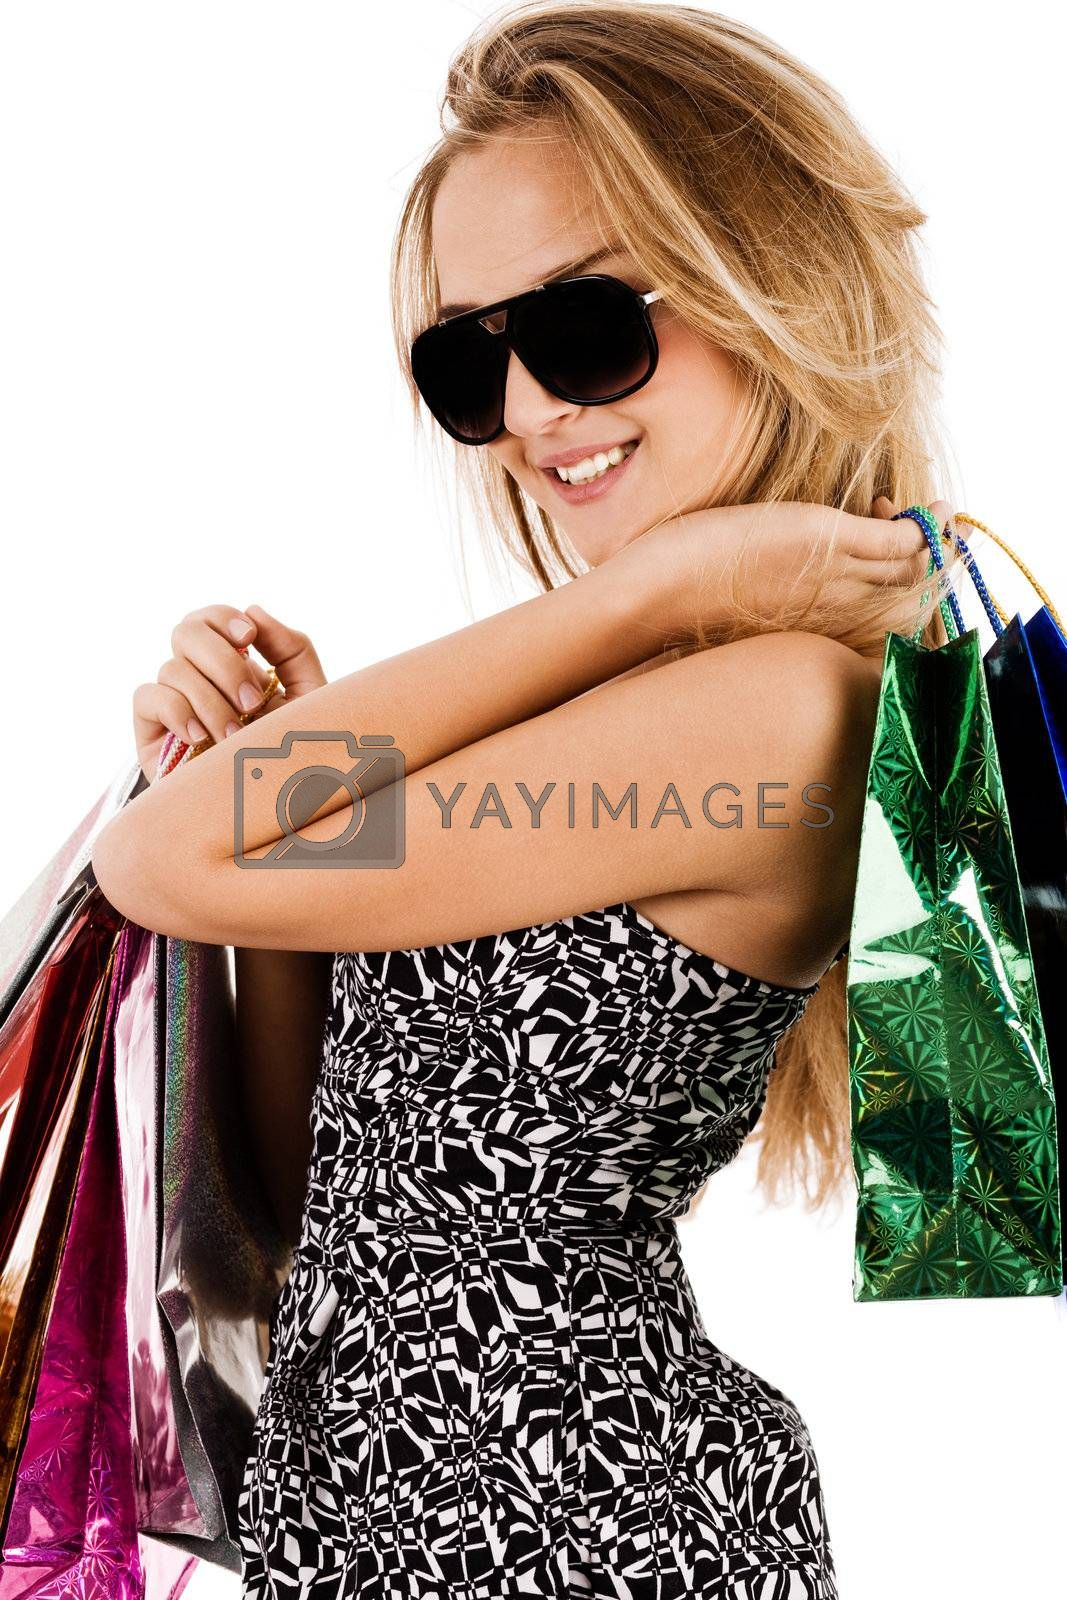 Lovely young model with shopping bags on a white background